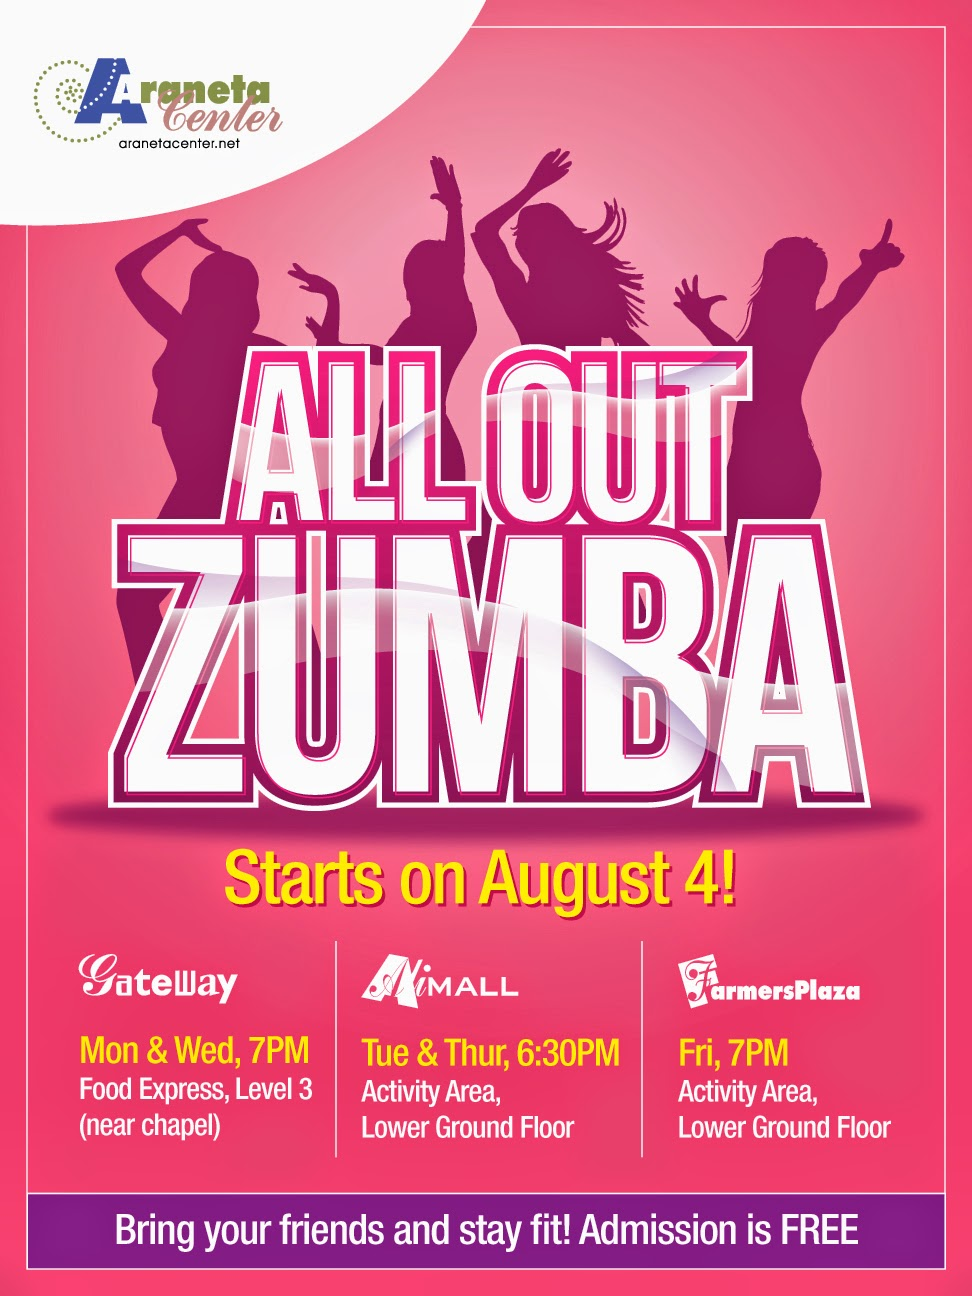 What's Happening at Araneta Center: FREE All Out Zumba